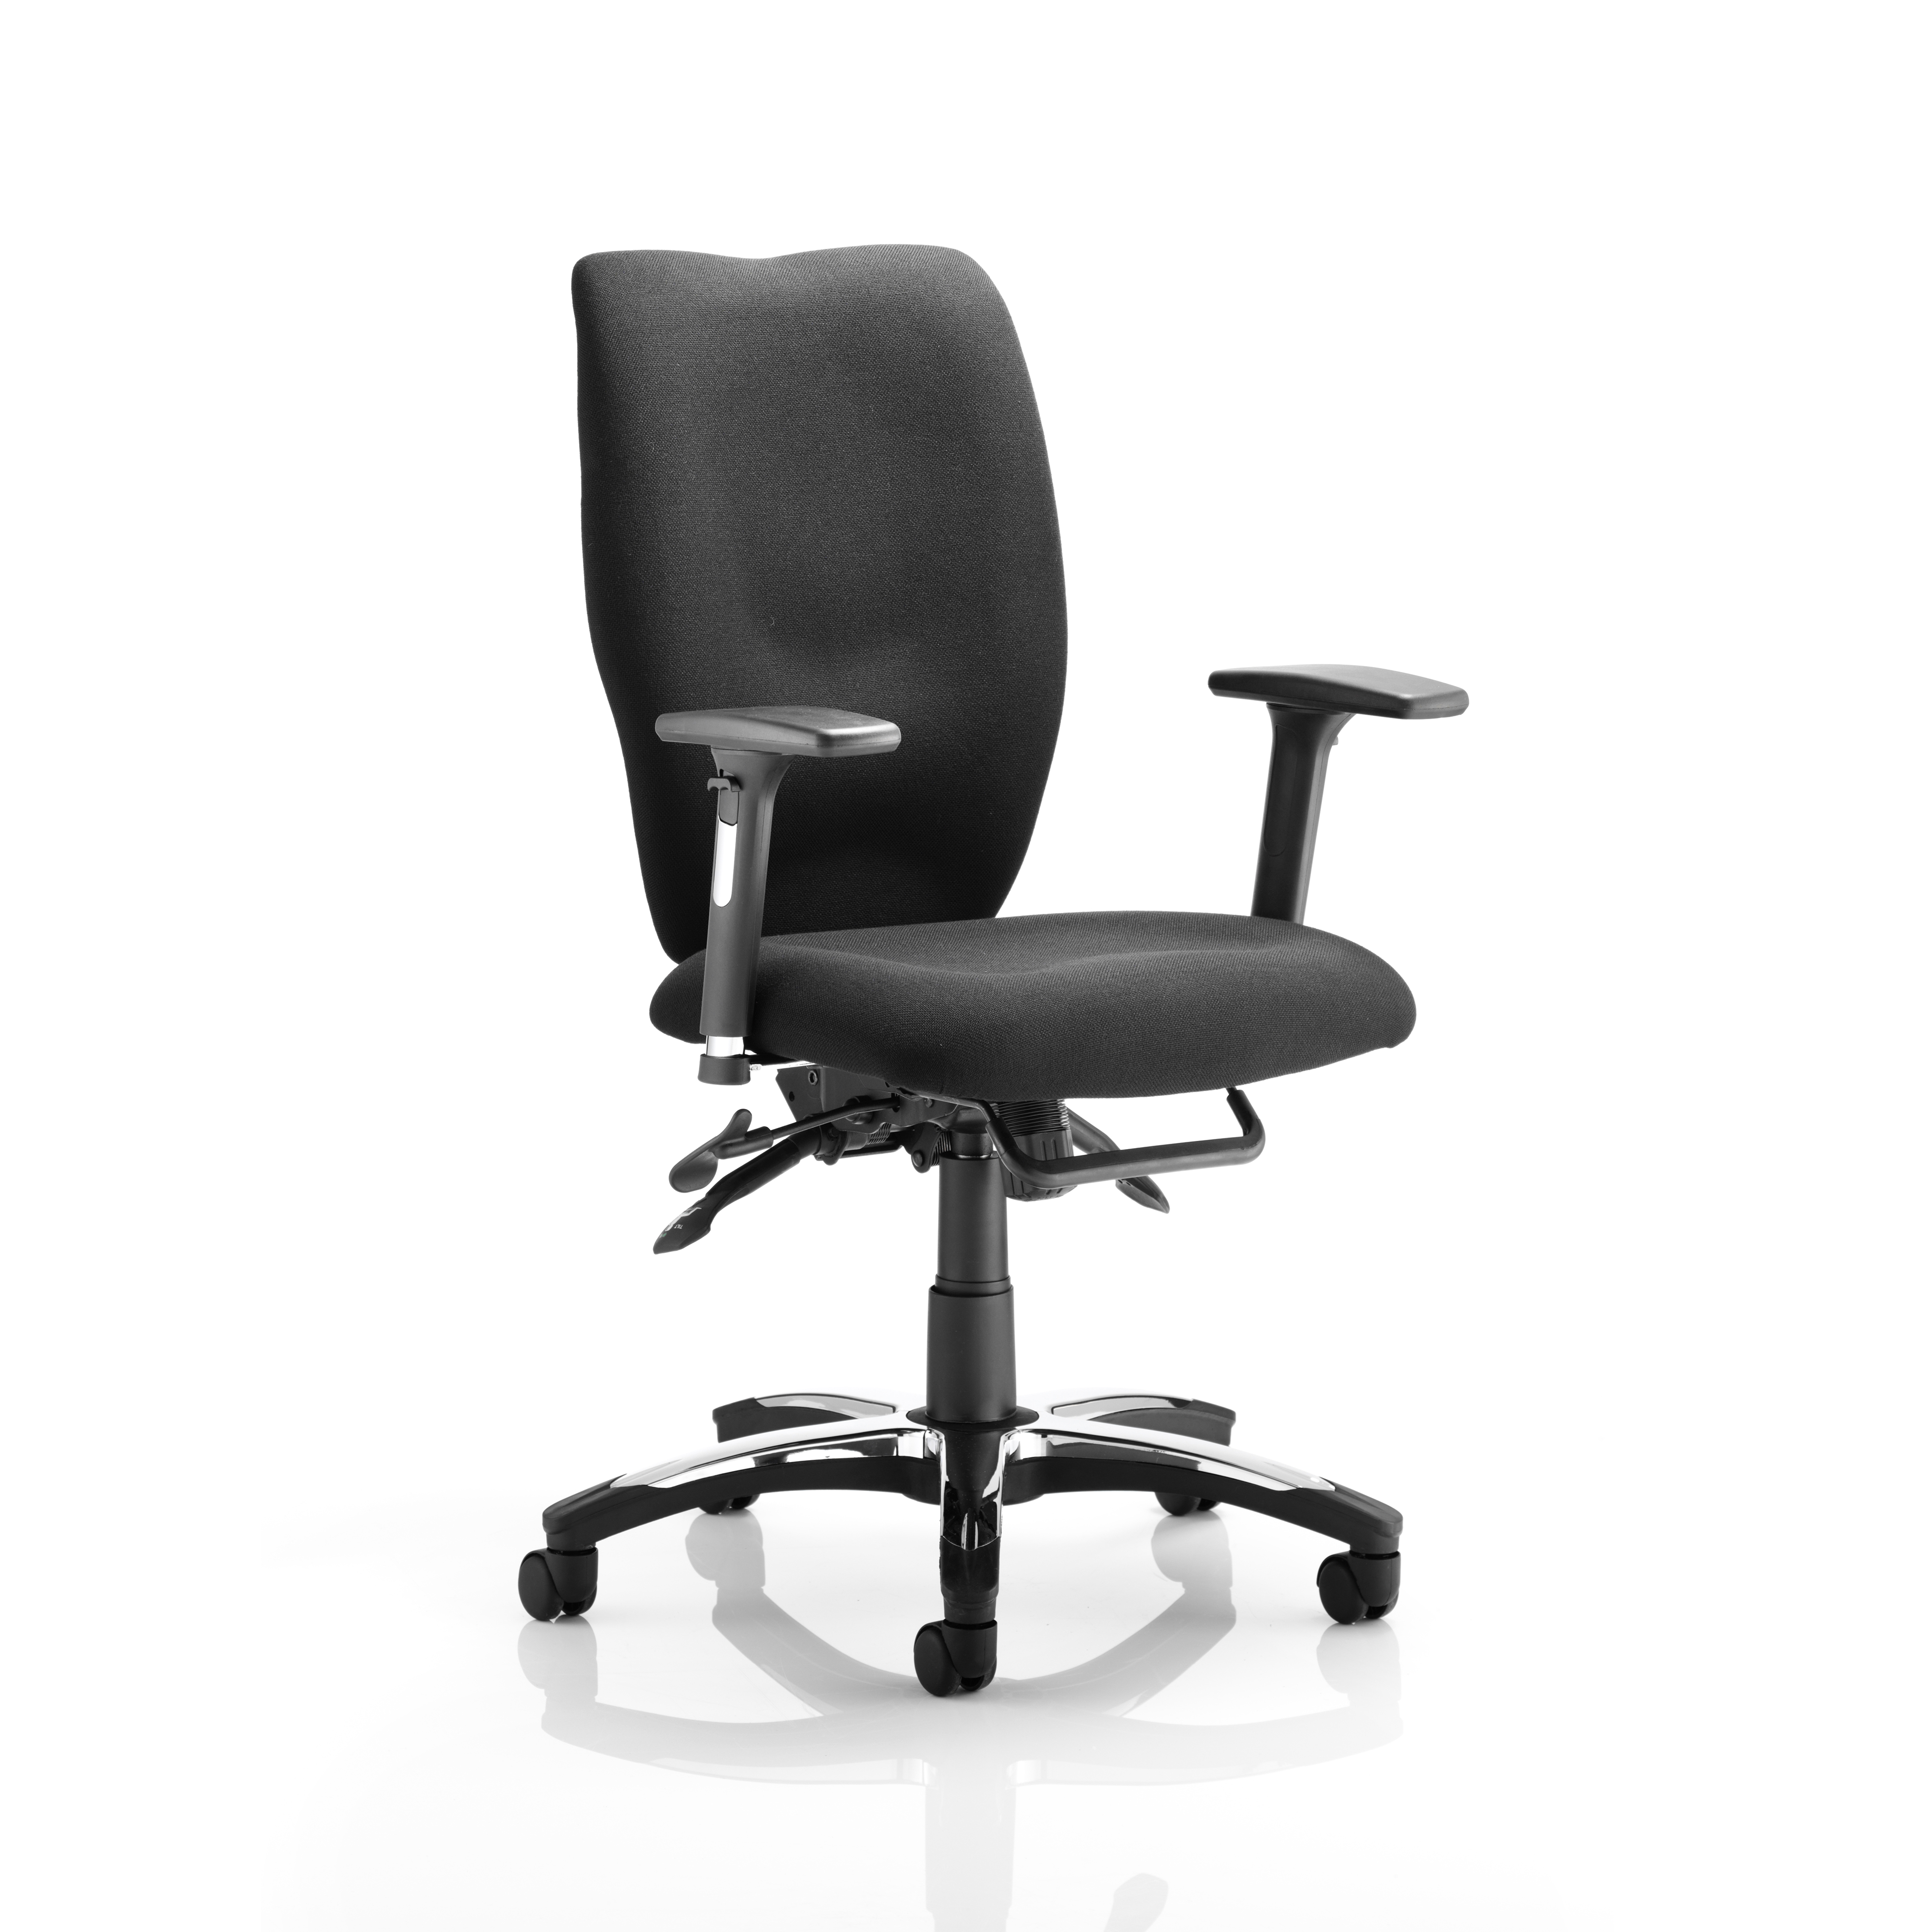 #SONIX SIERRA CHAIR BLACK